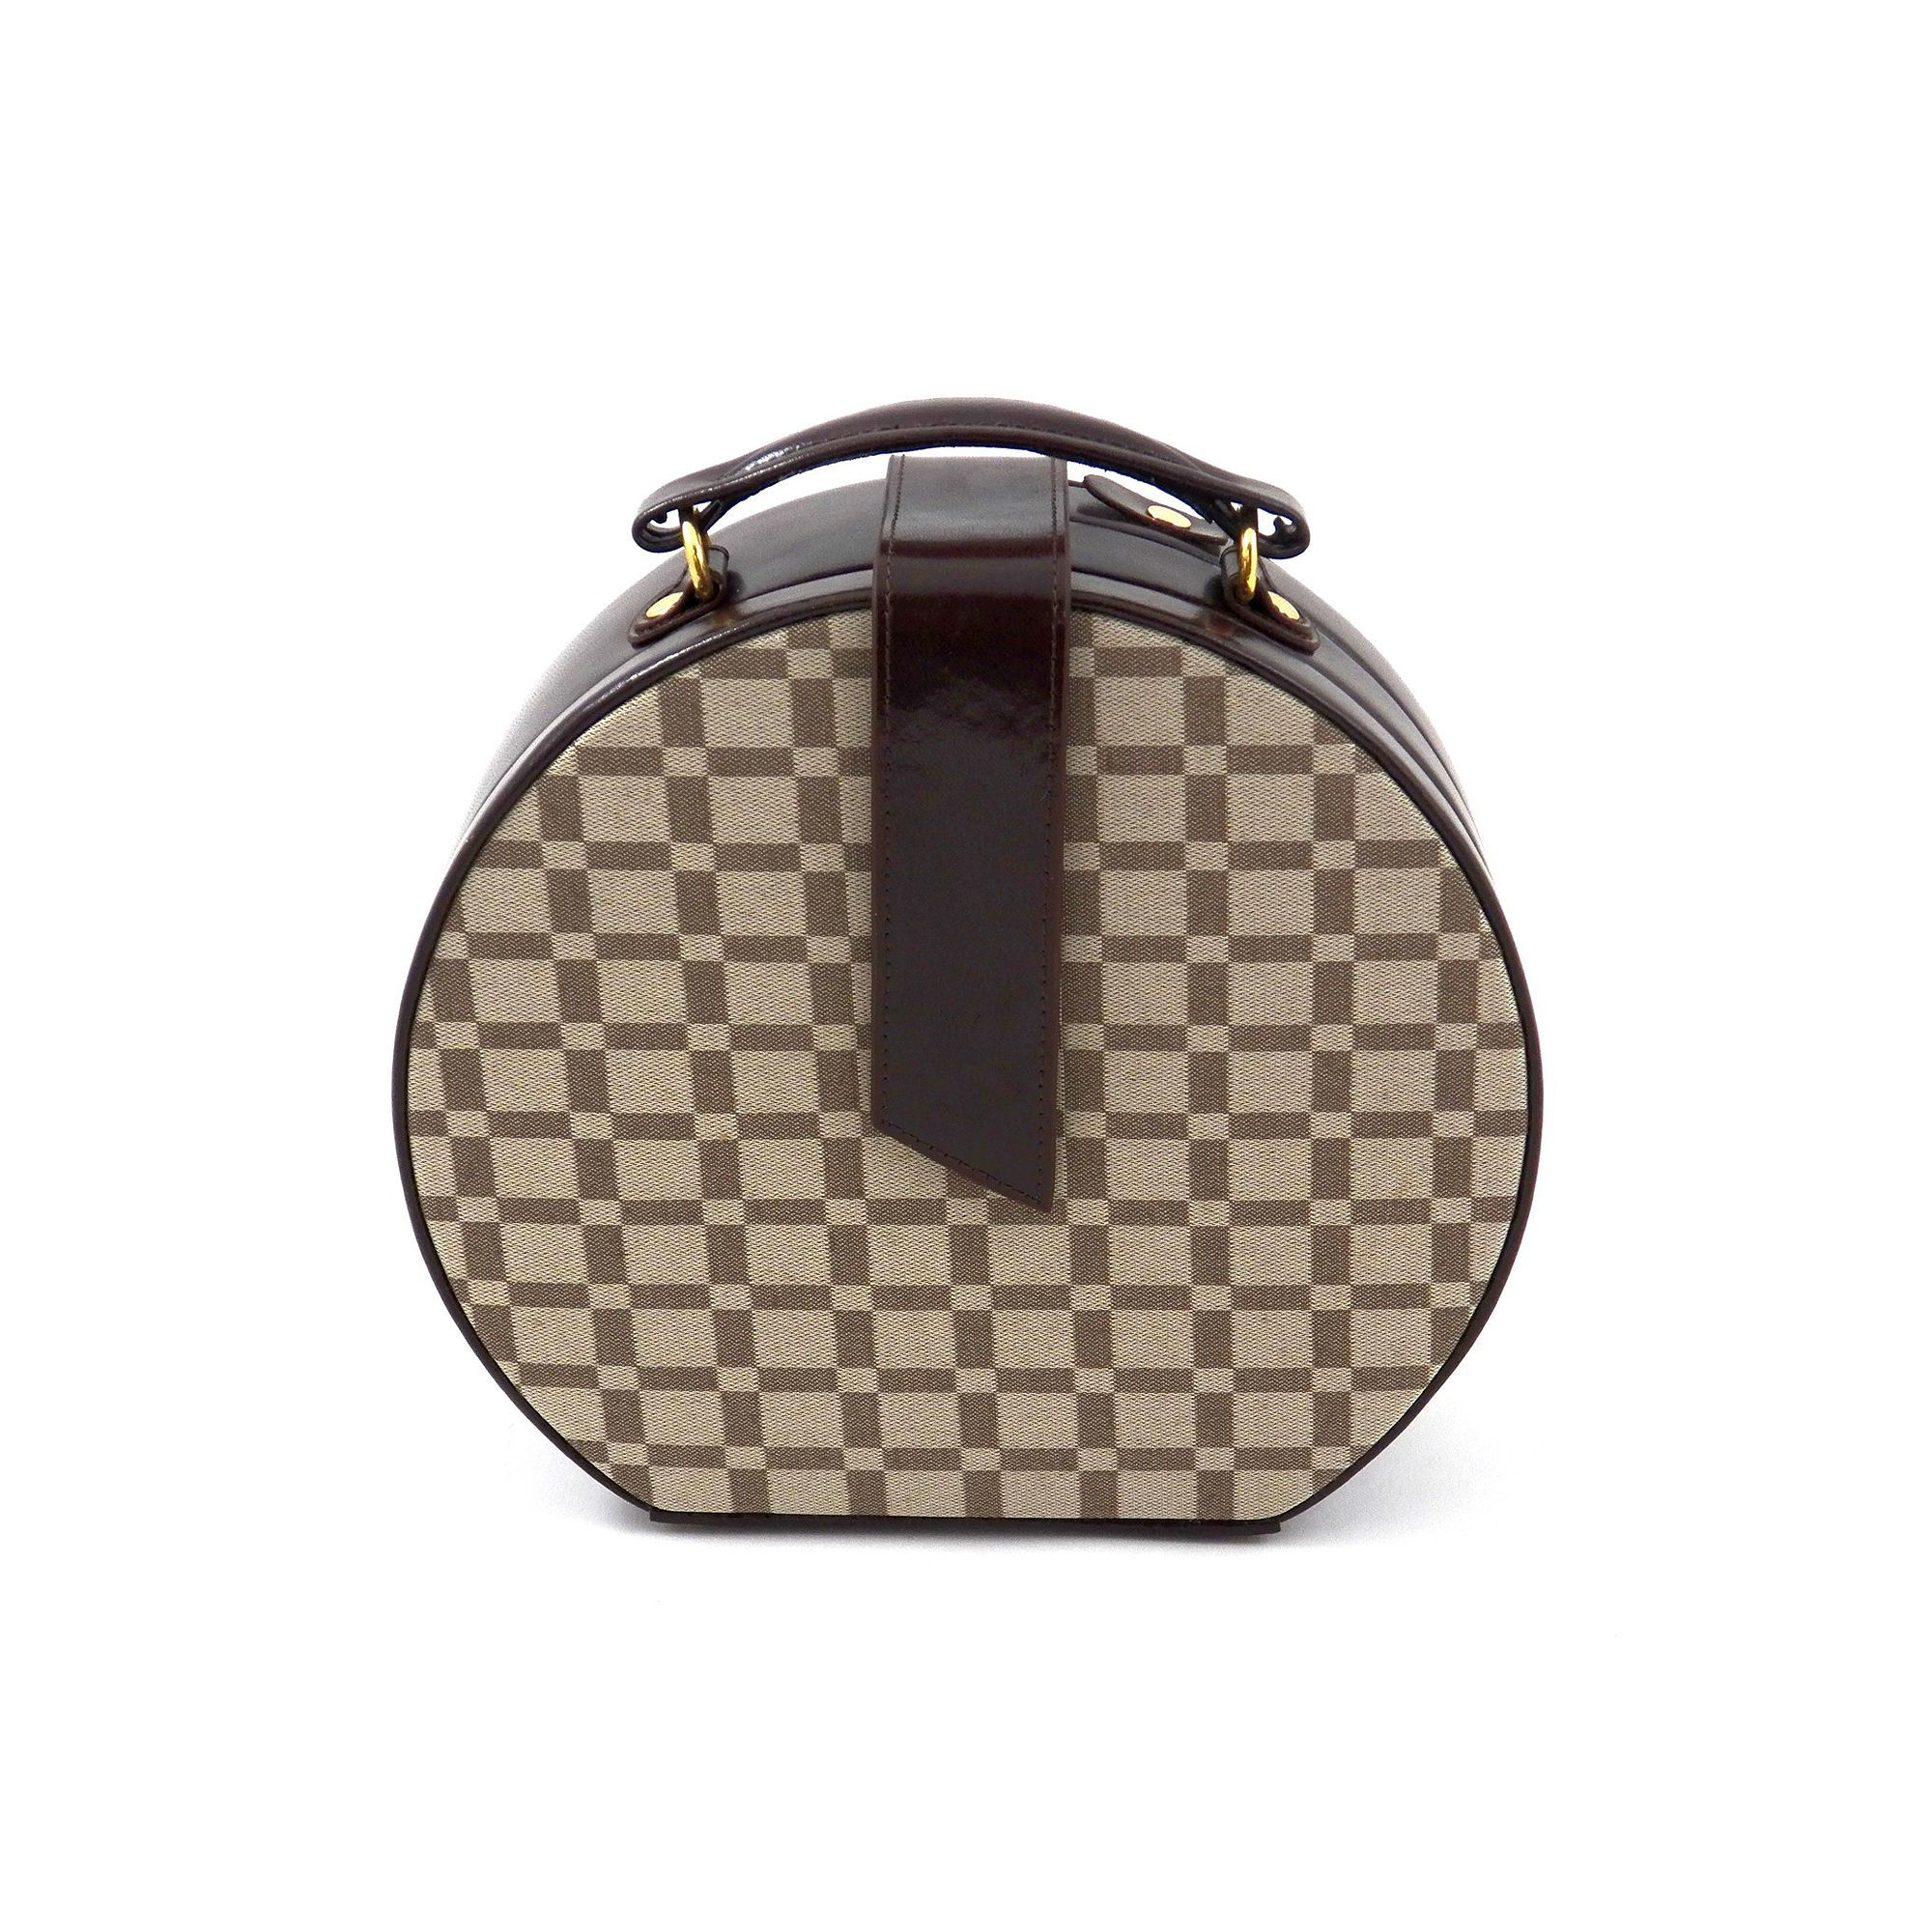 Kohls Jewelry Box Cool Beyberk Brown Leather Checkered Jewelry Box And Valet Tray Set Review